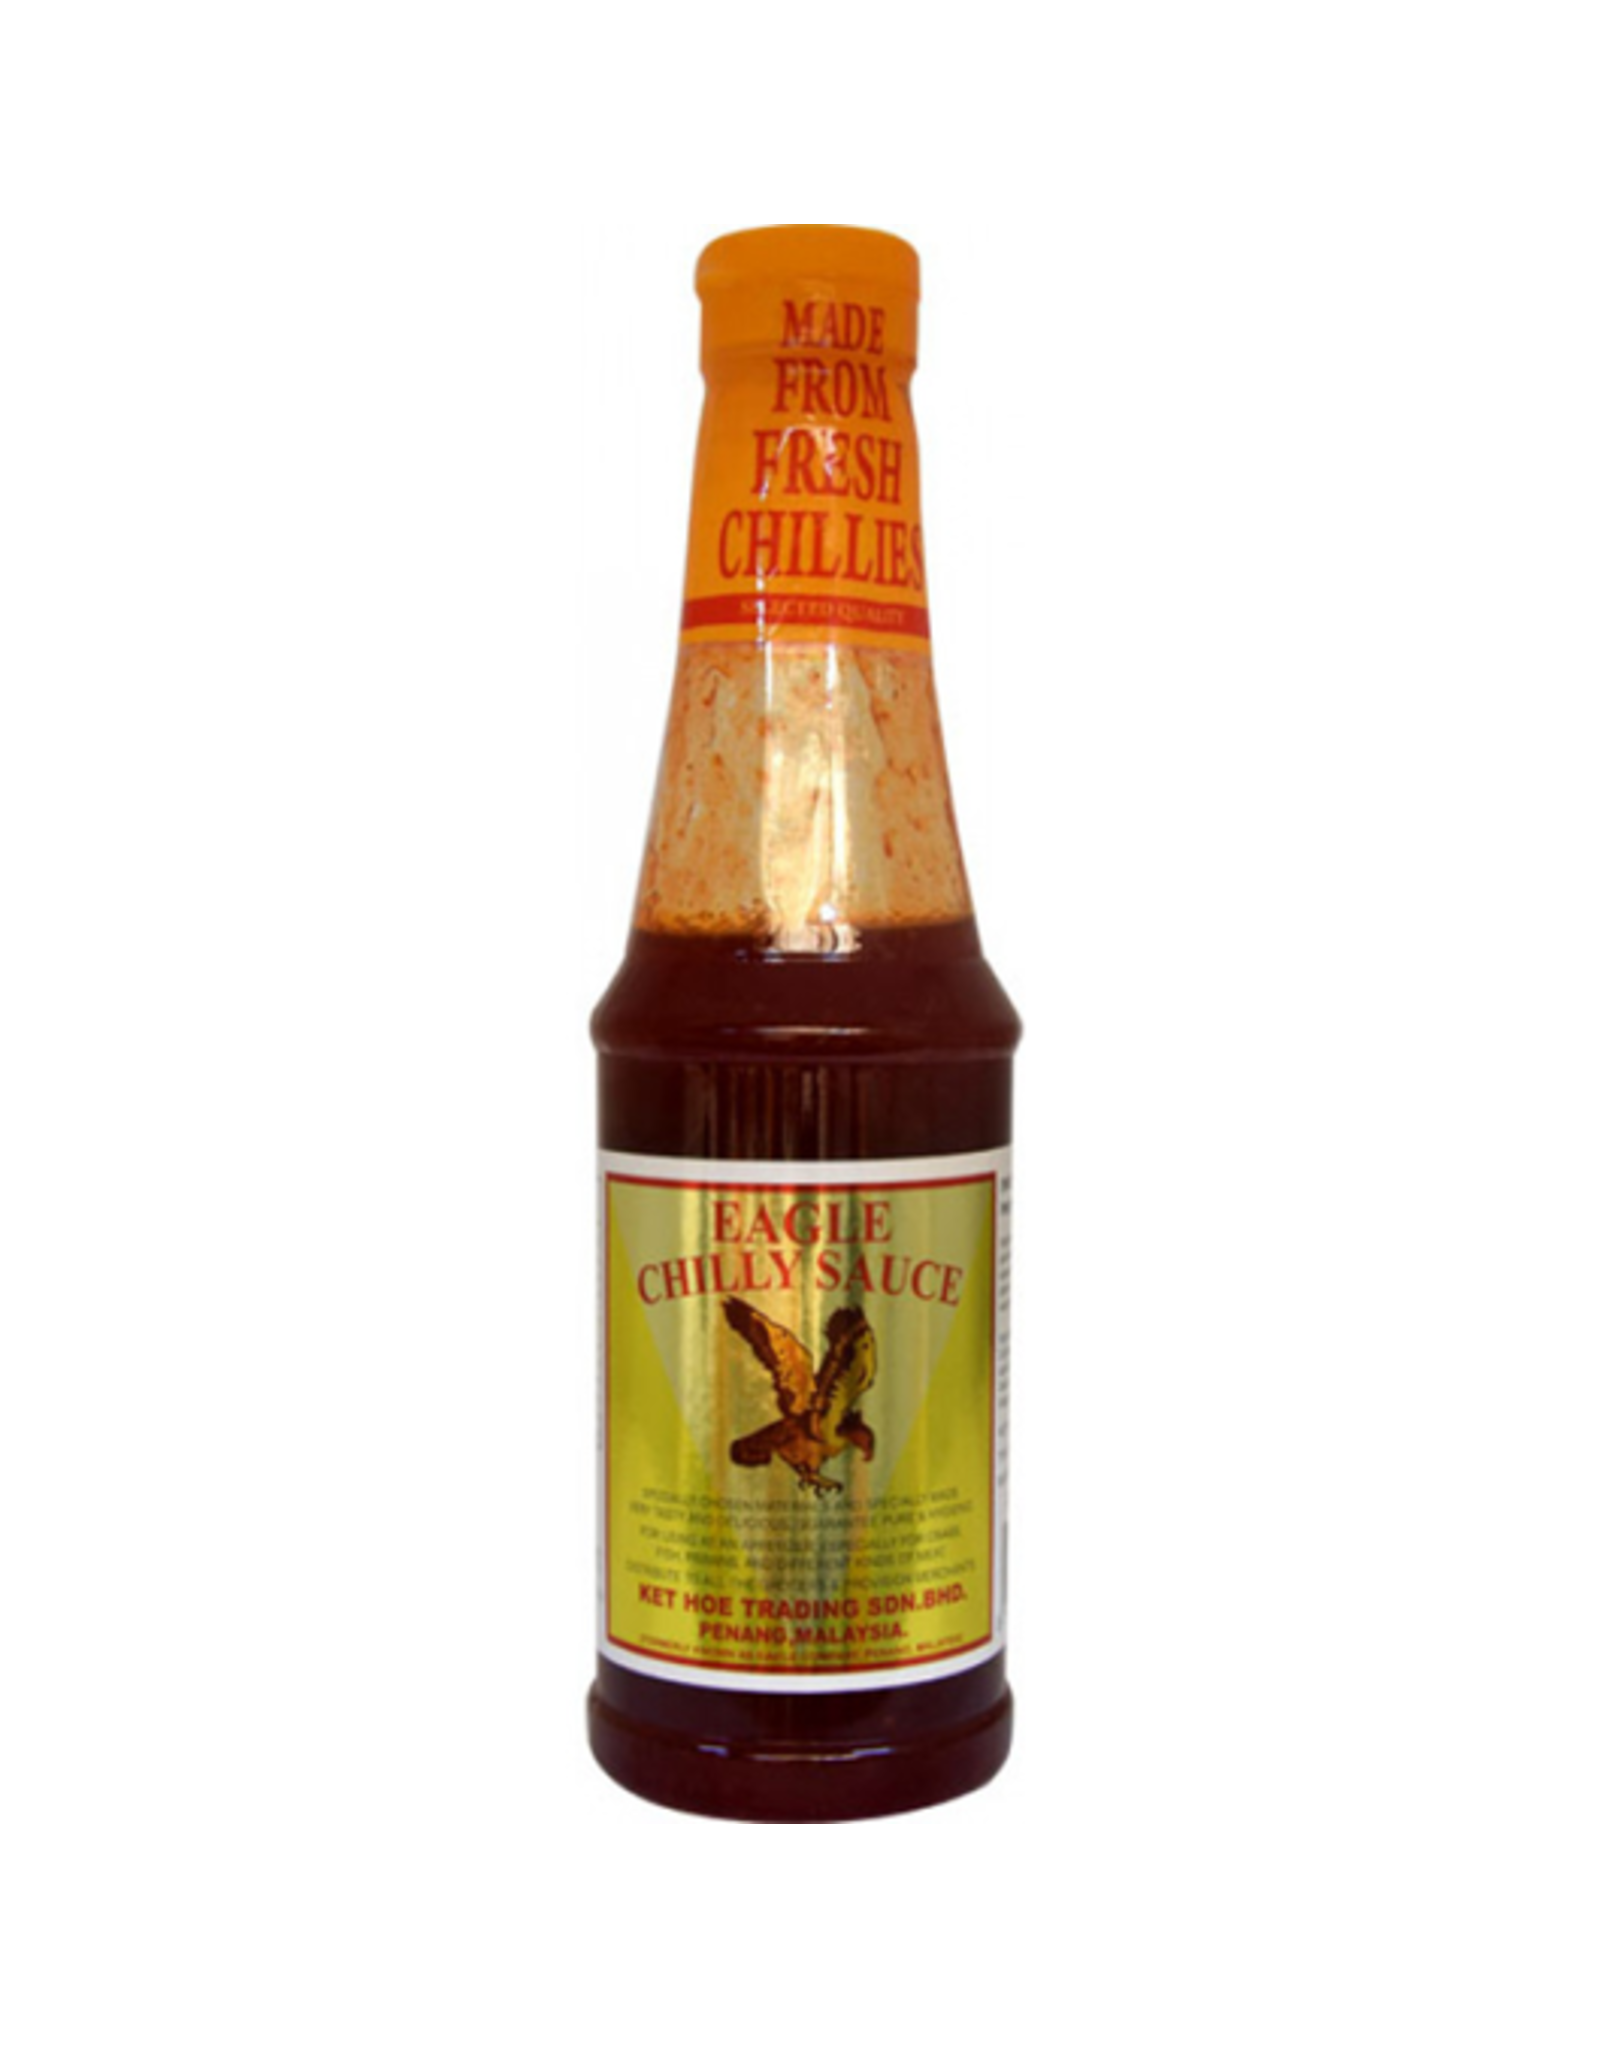 Eagle Chilly Sauce